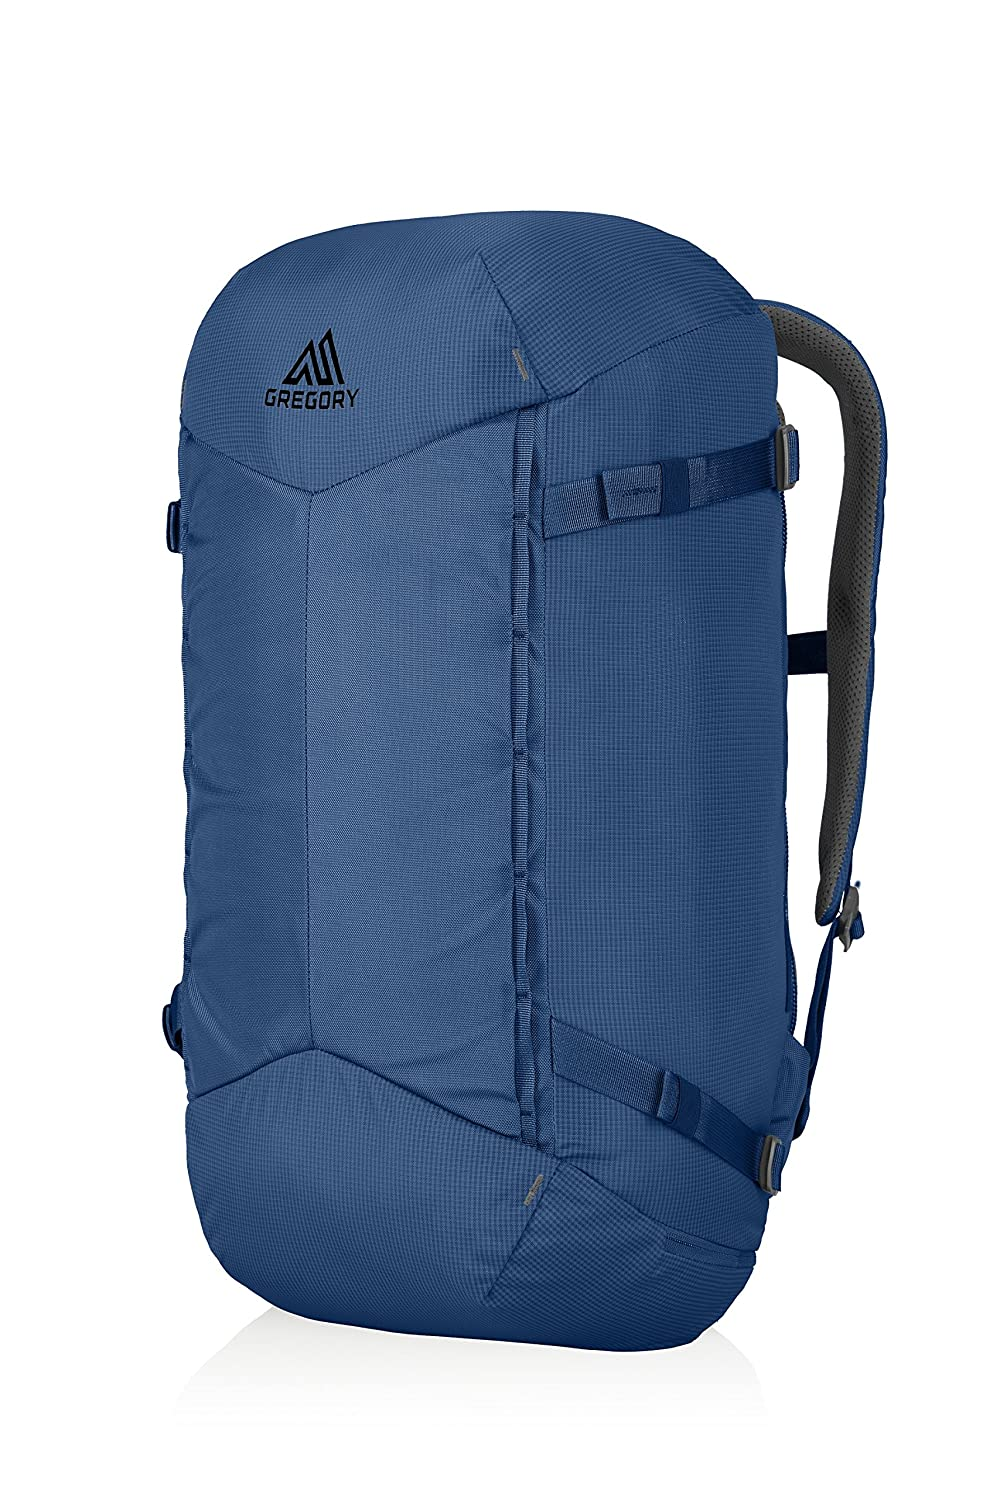 Gregory Mountain Products Compass 40 Liter Daypack, Indigo Blue, One Size 68399-1439